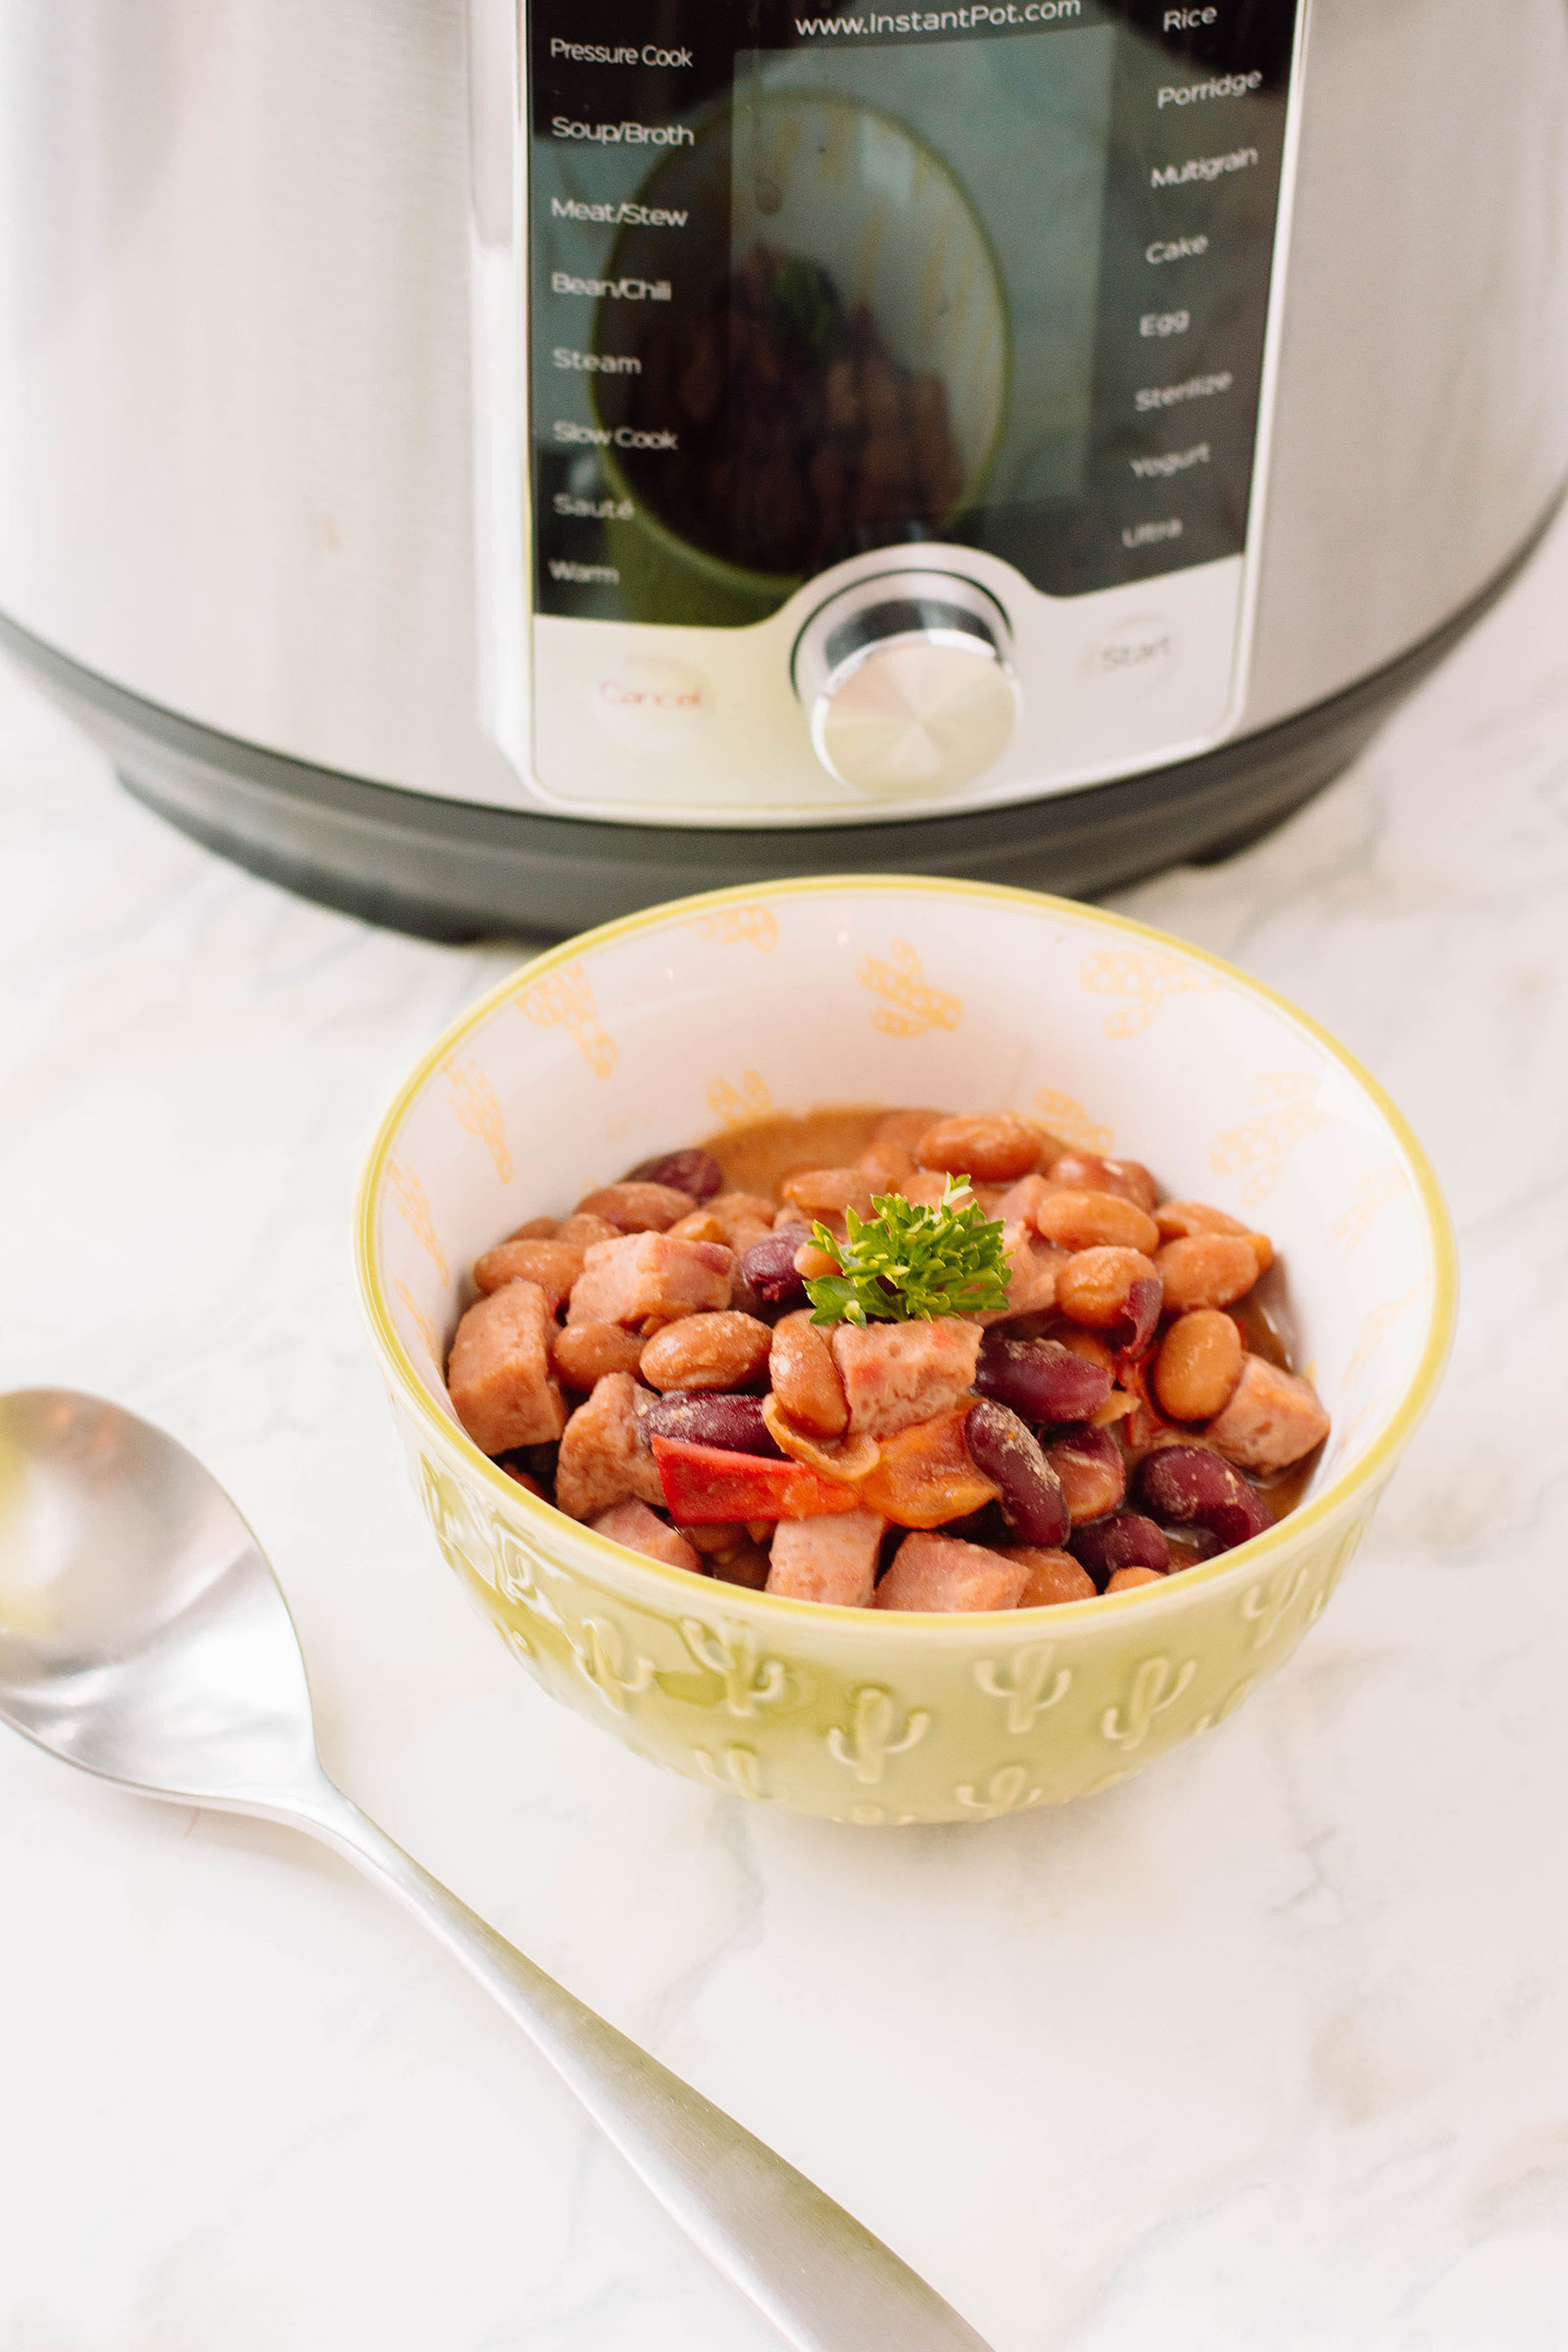 The Best Recipe for Instant Pot Baked Beans